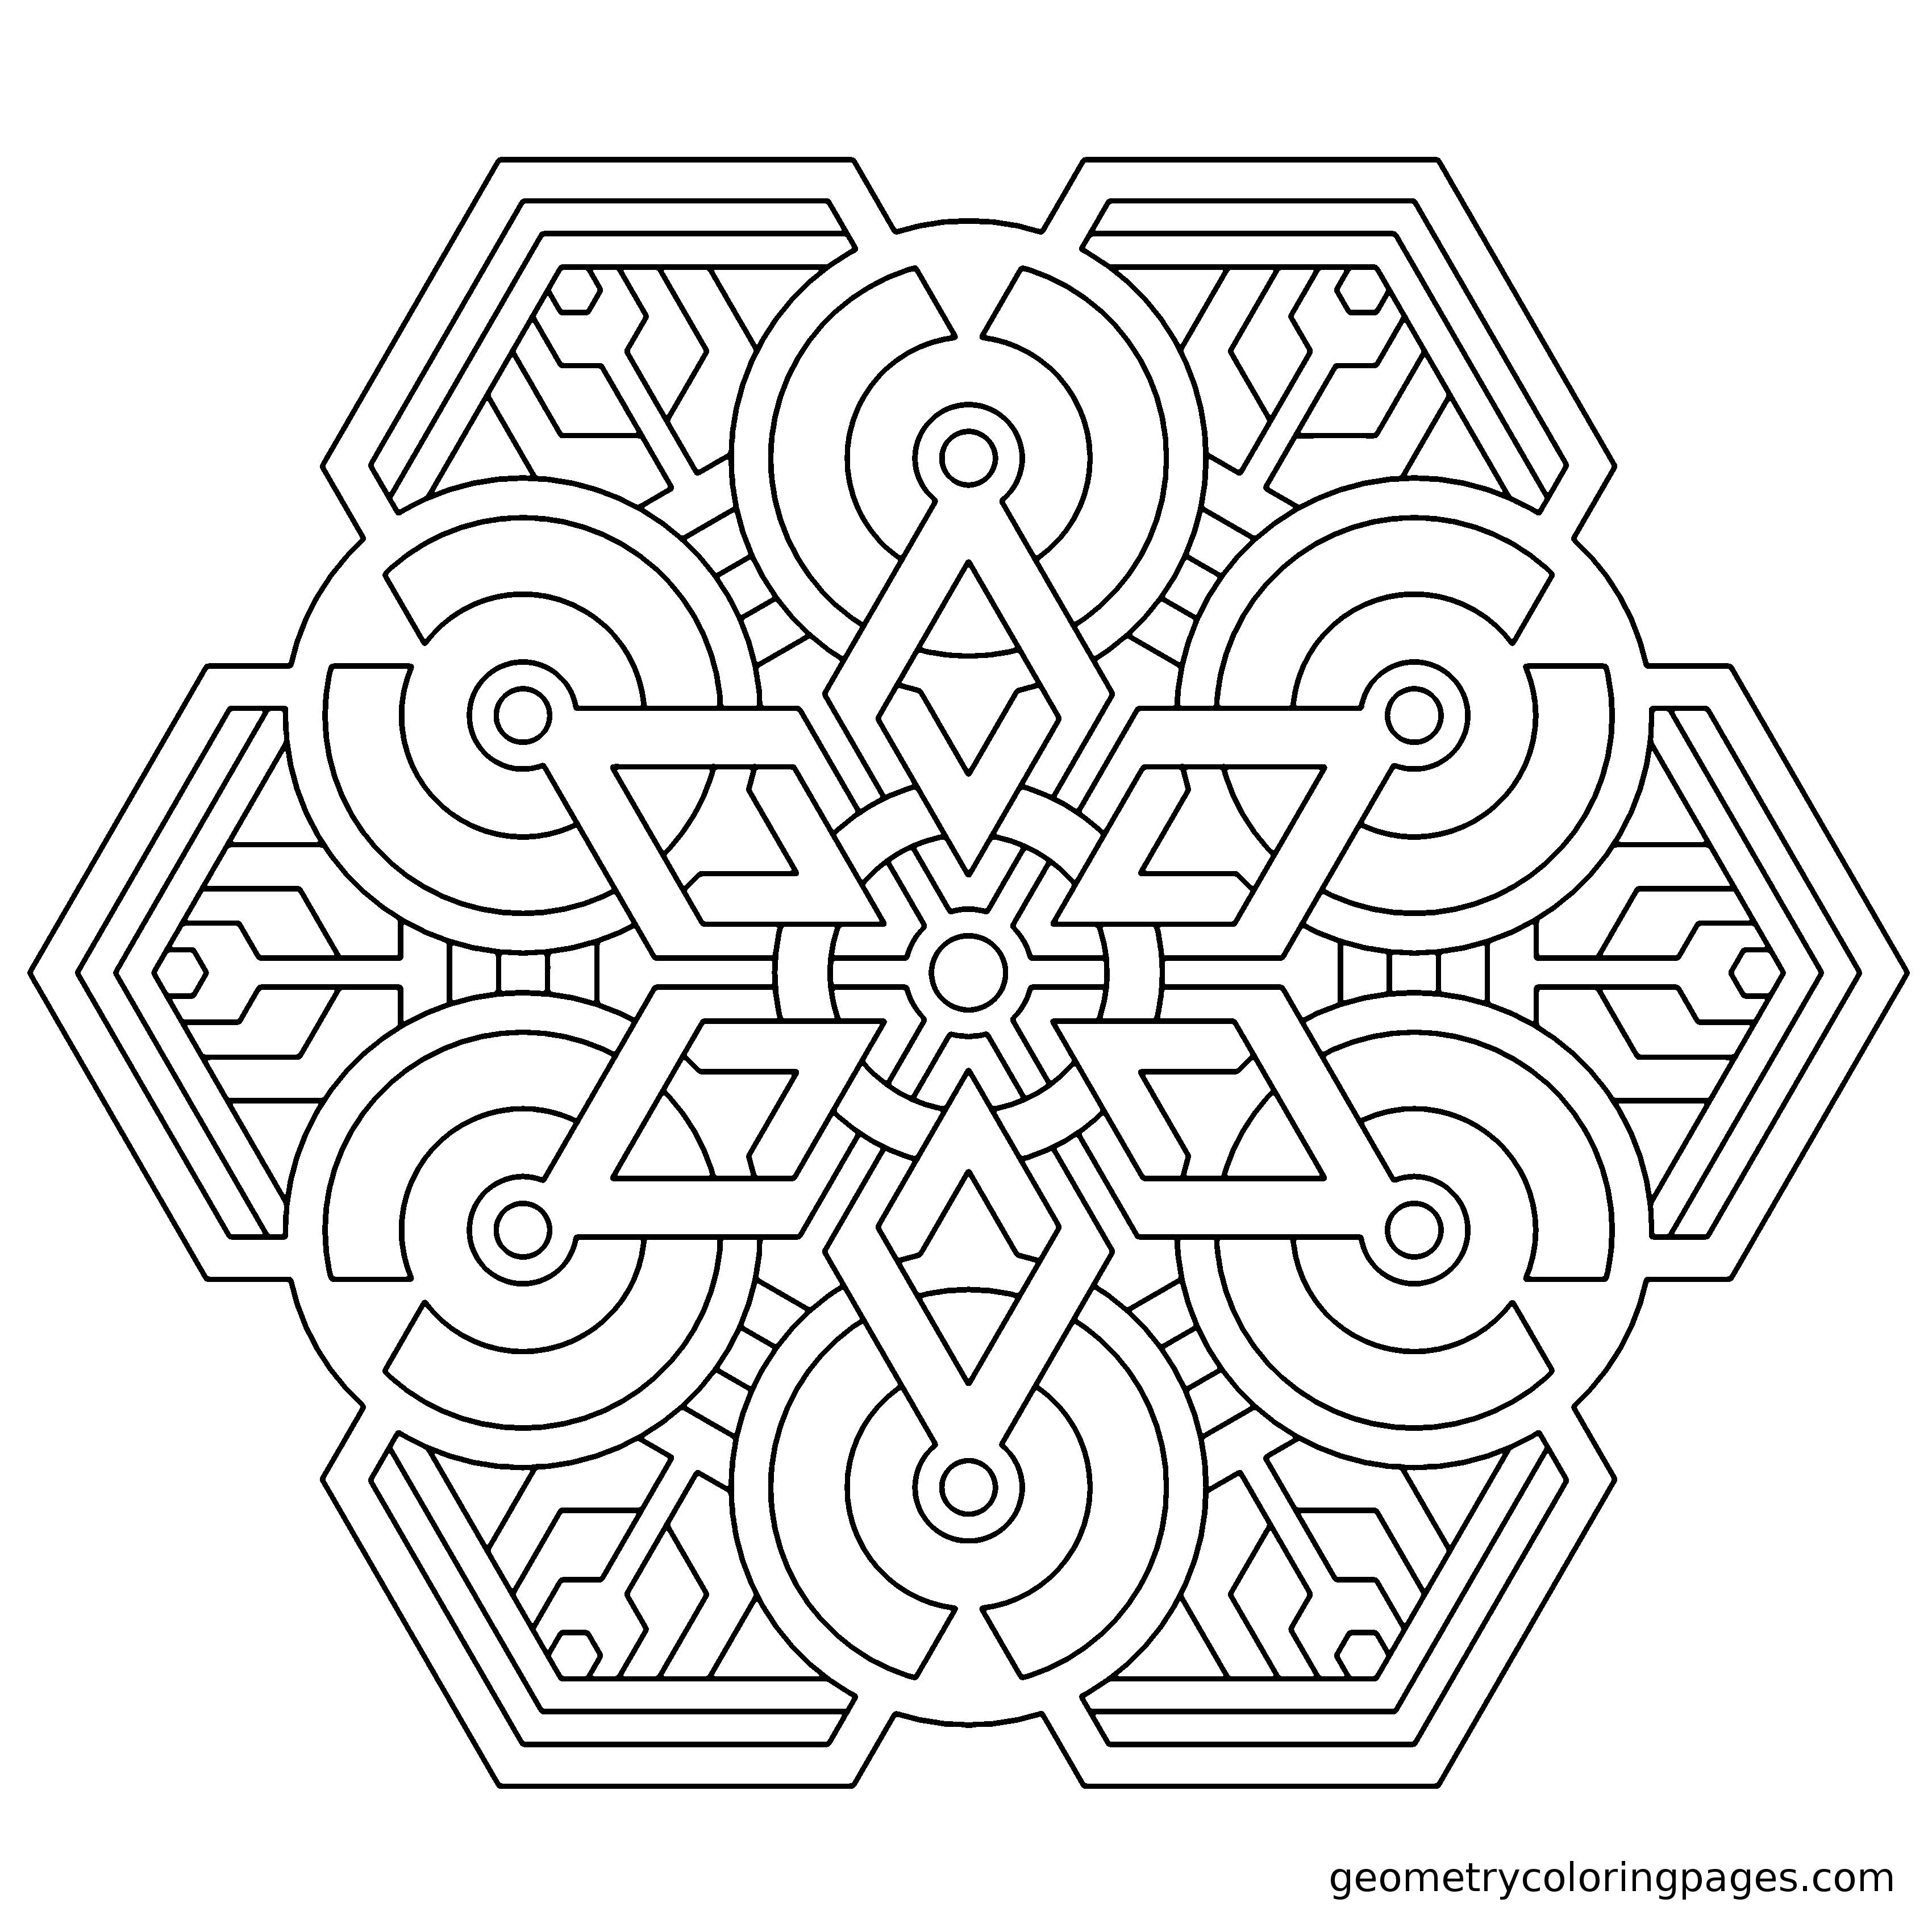 Metatron S Generator Ii Geometrycoloringpages Com Geometric Coloring Pages Mandala Coloring Pages Pattern Coloring Pages